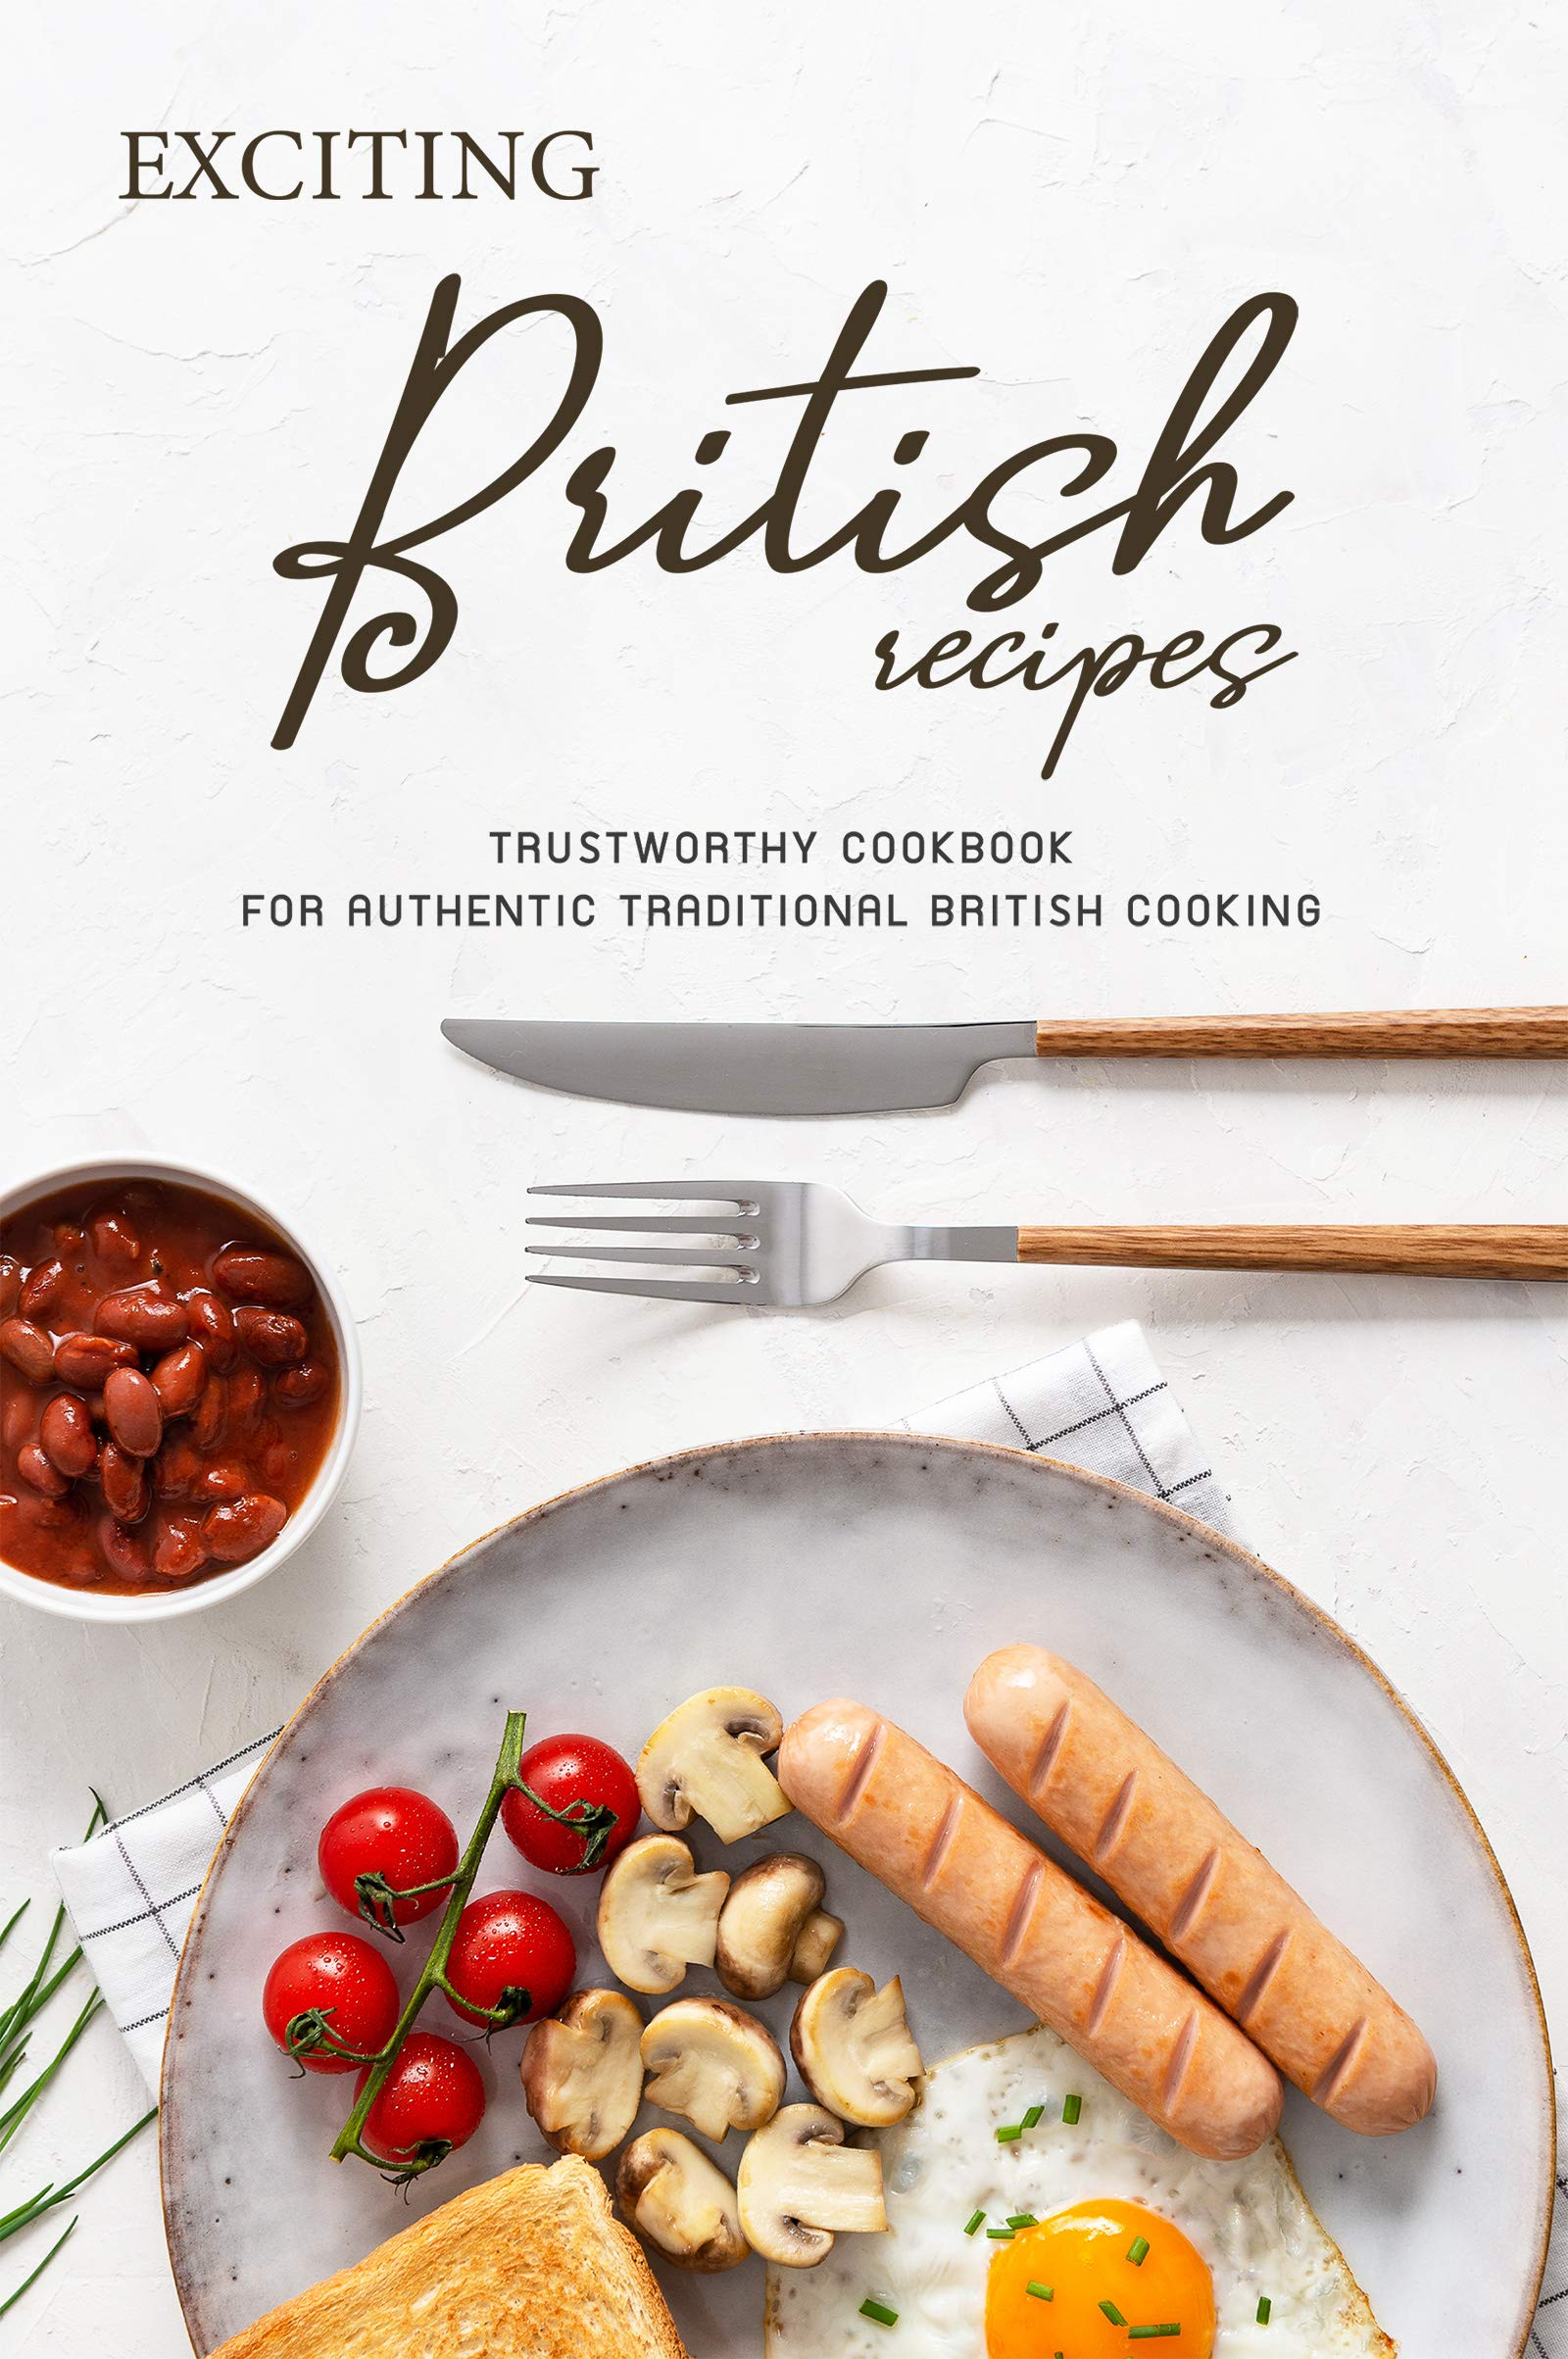 Exciting British Recipes  Trustworthy Cookbook For Authentic Traditional British Cooking  English Edition